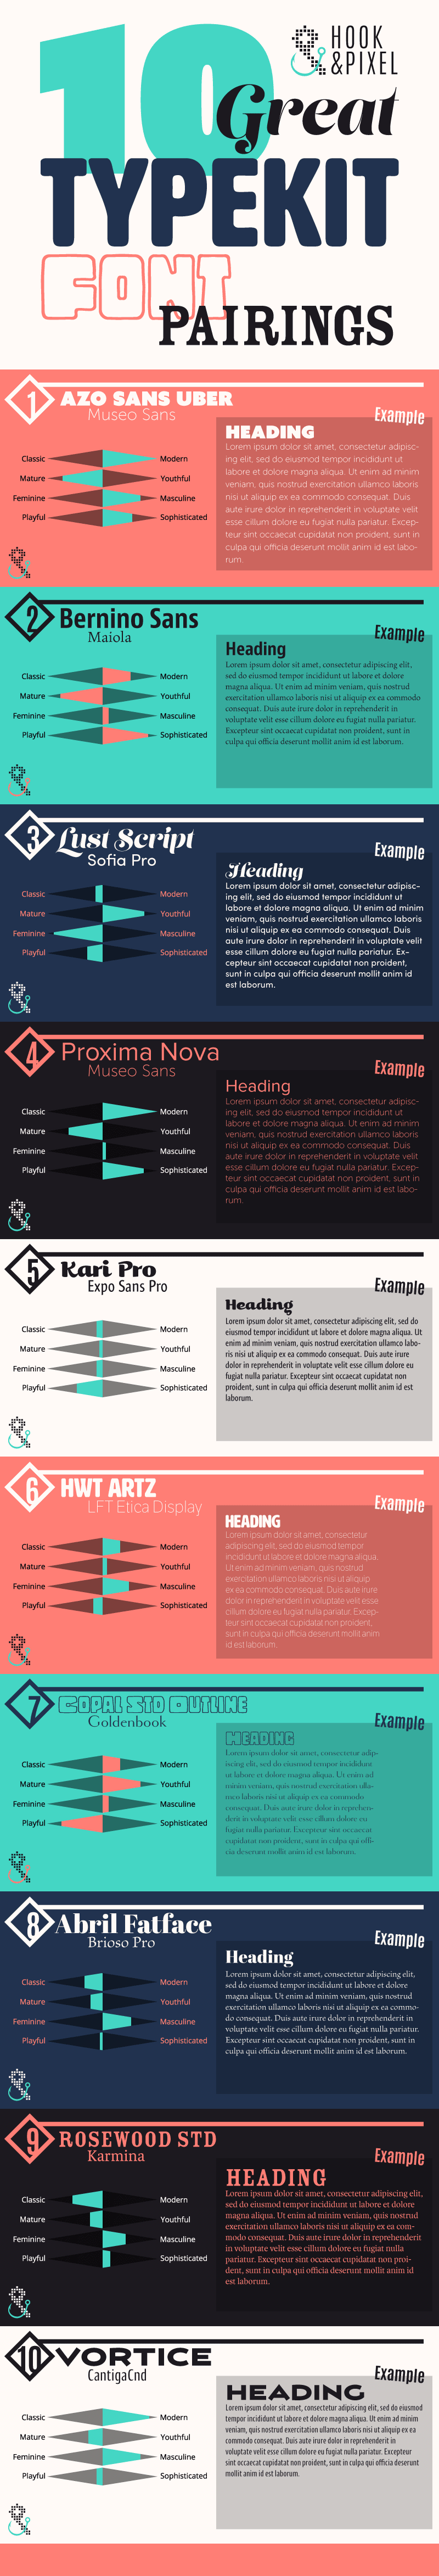 10 Great Typekit Font Pairings - Hook & Pixel